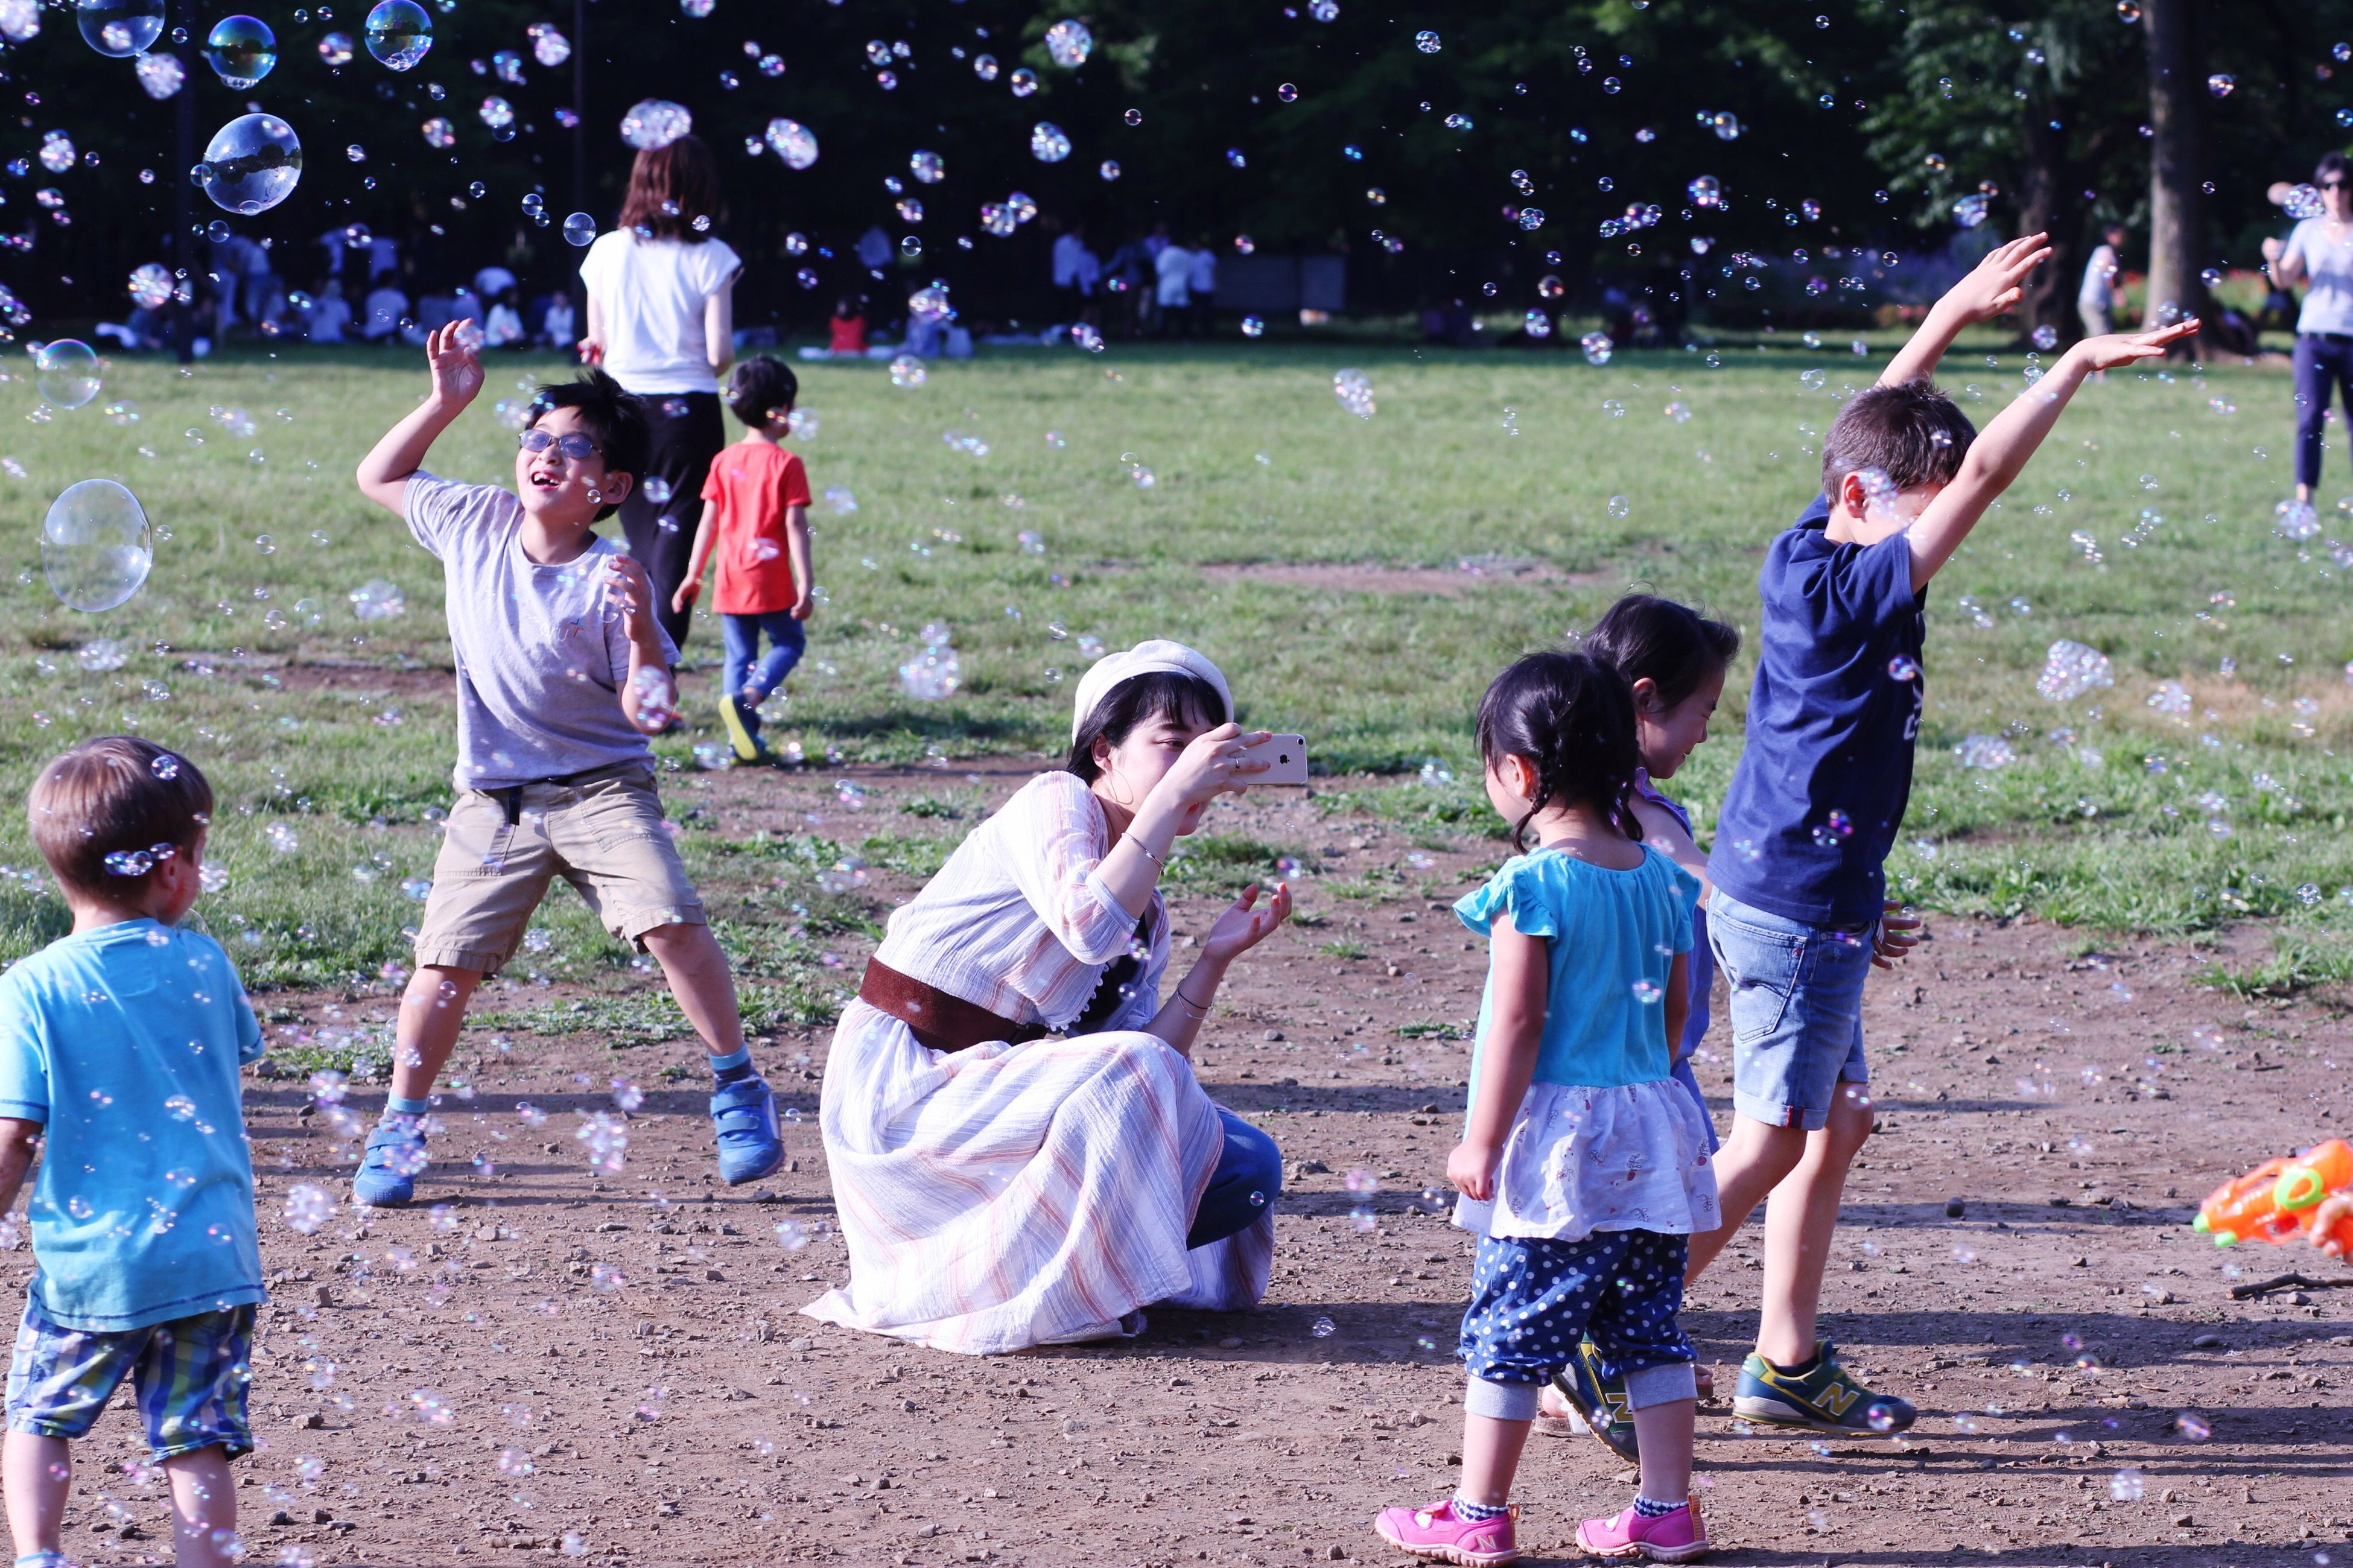 boys, child, childhood, girls, casual clothing, park - man made space, outdoors, playing, day, full length, human body part, happiness, standing, grass, people, adult